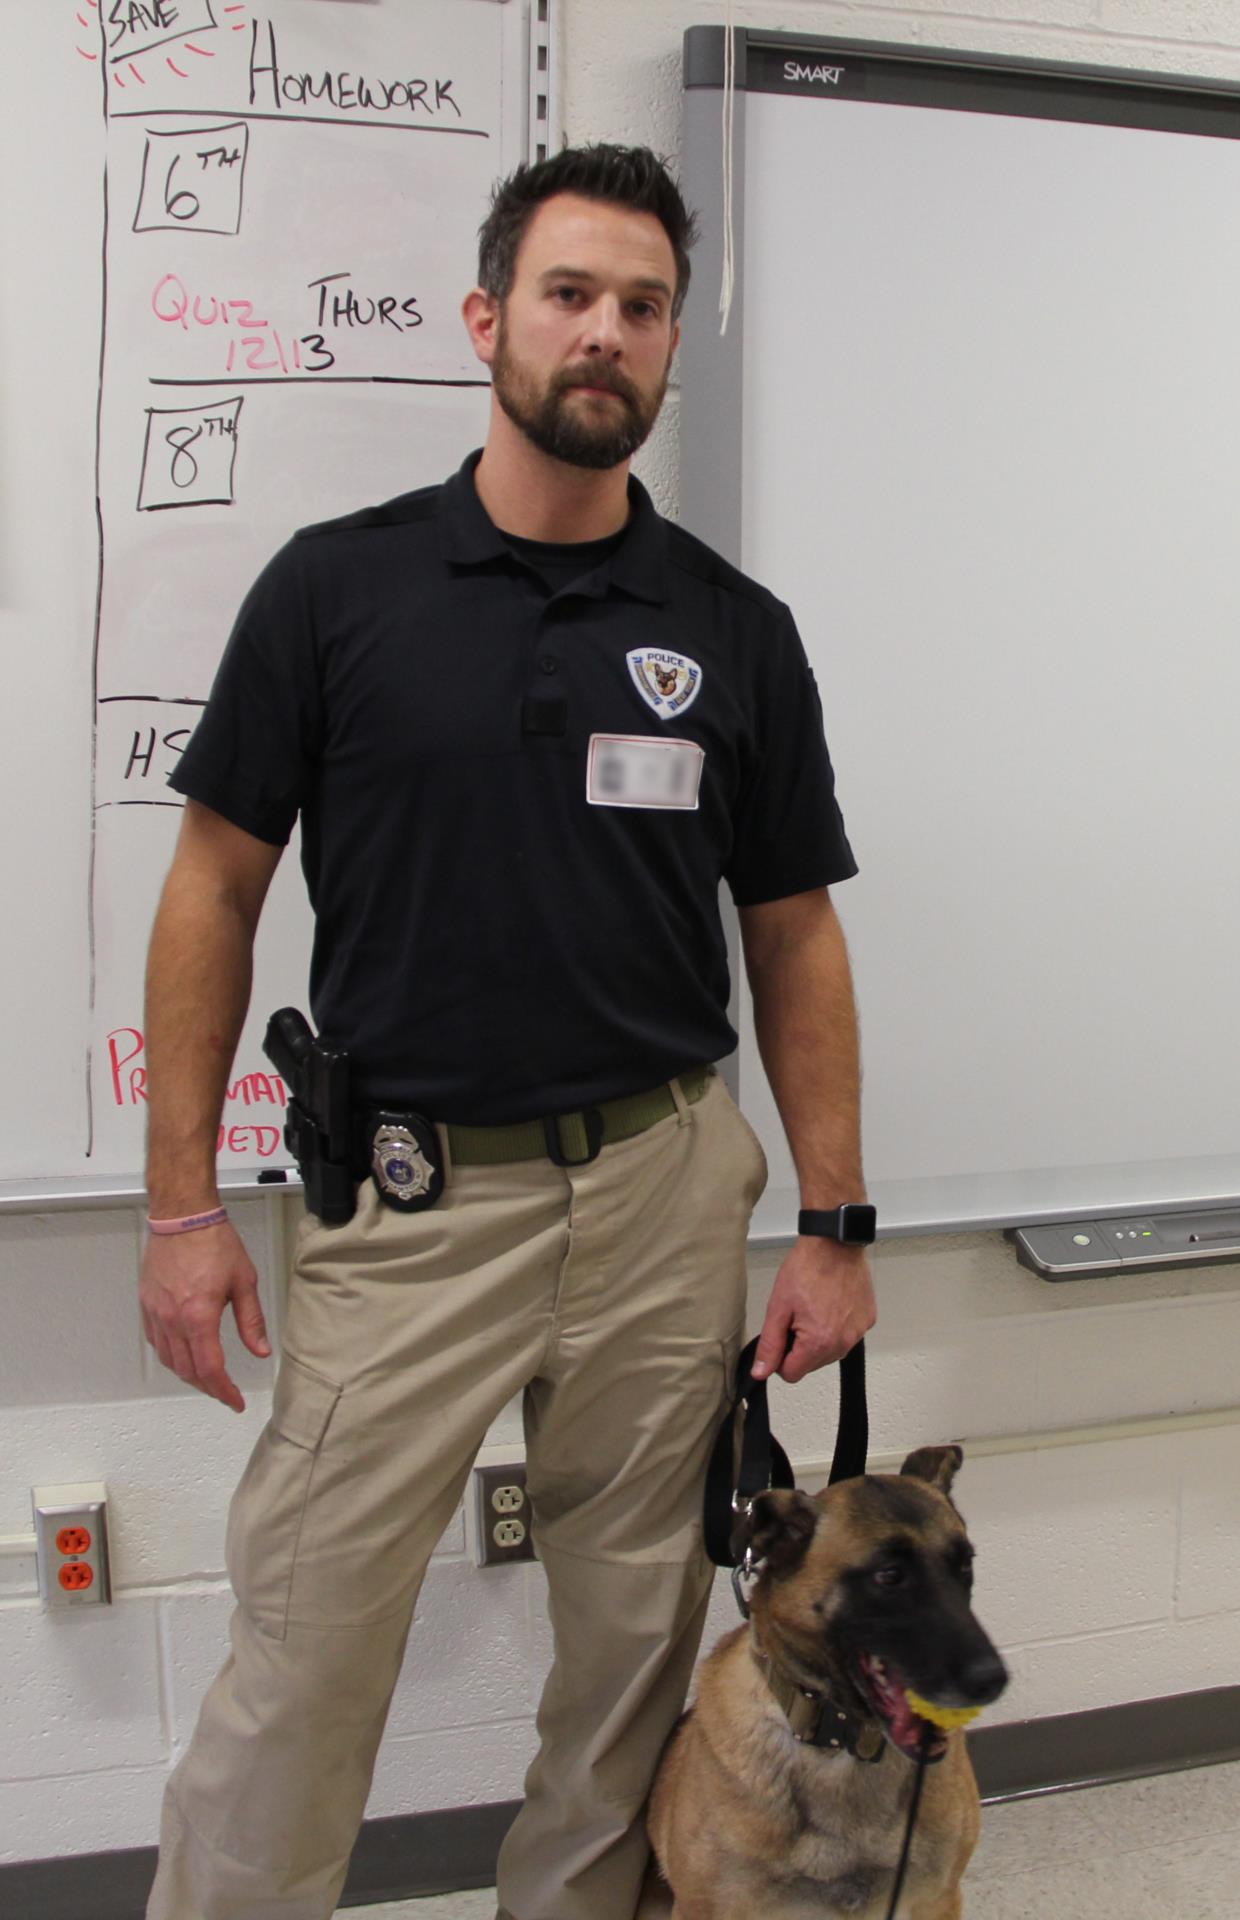 officer and k 9 standing